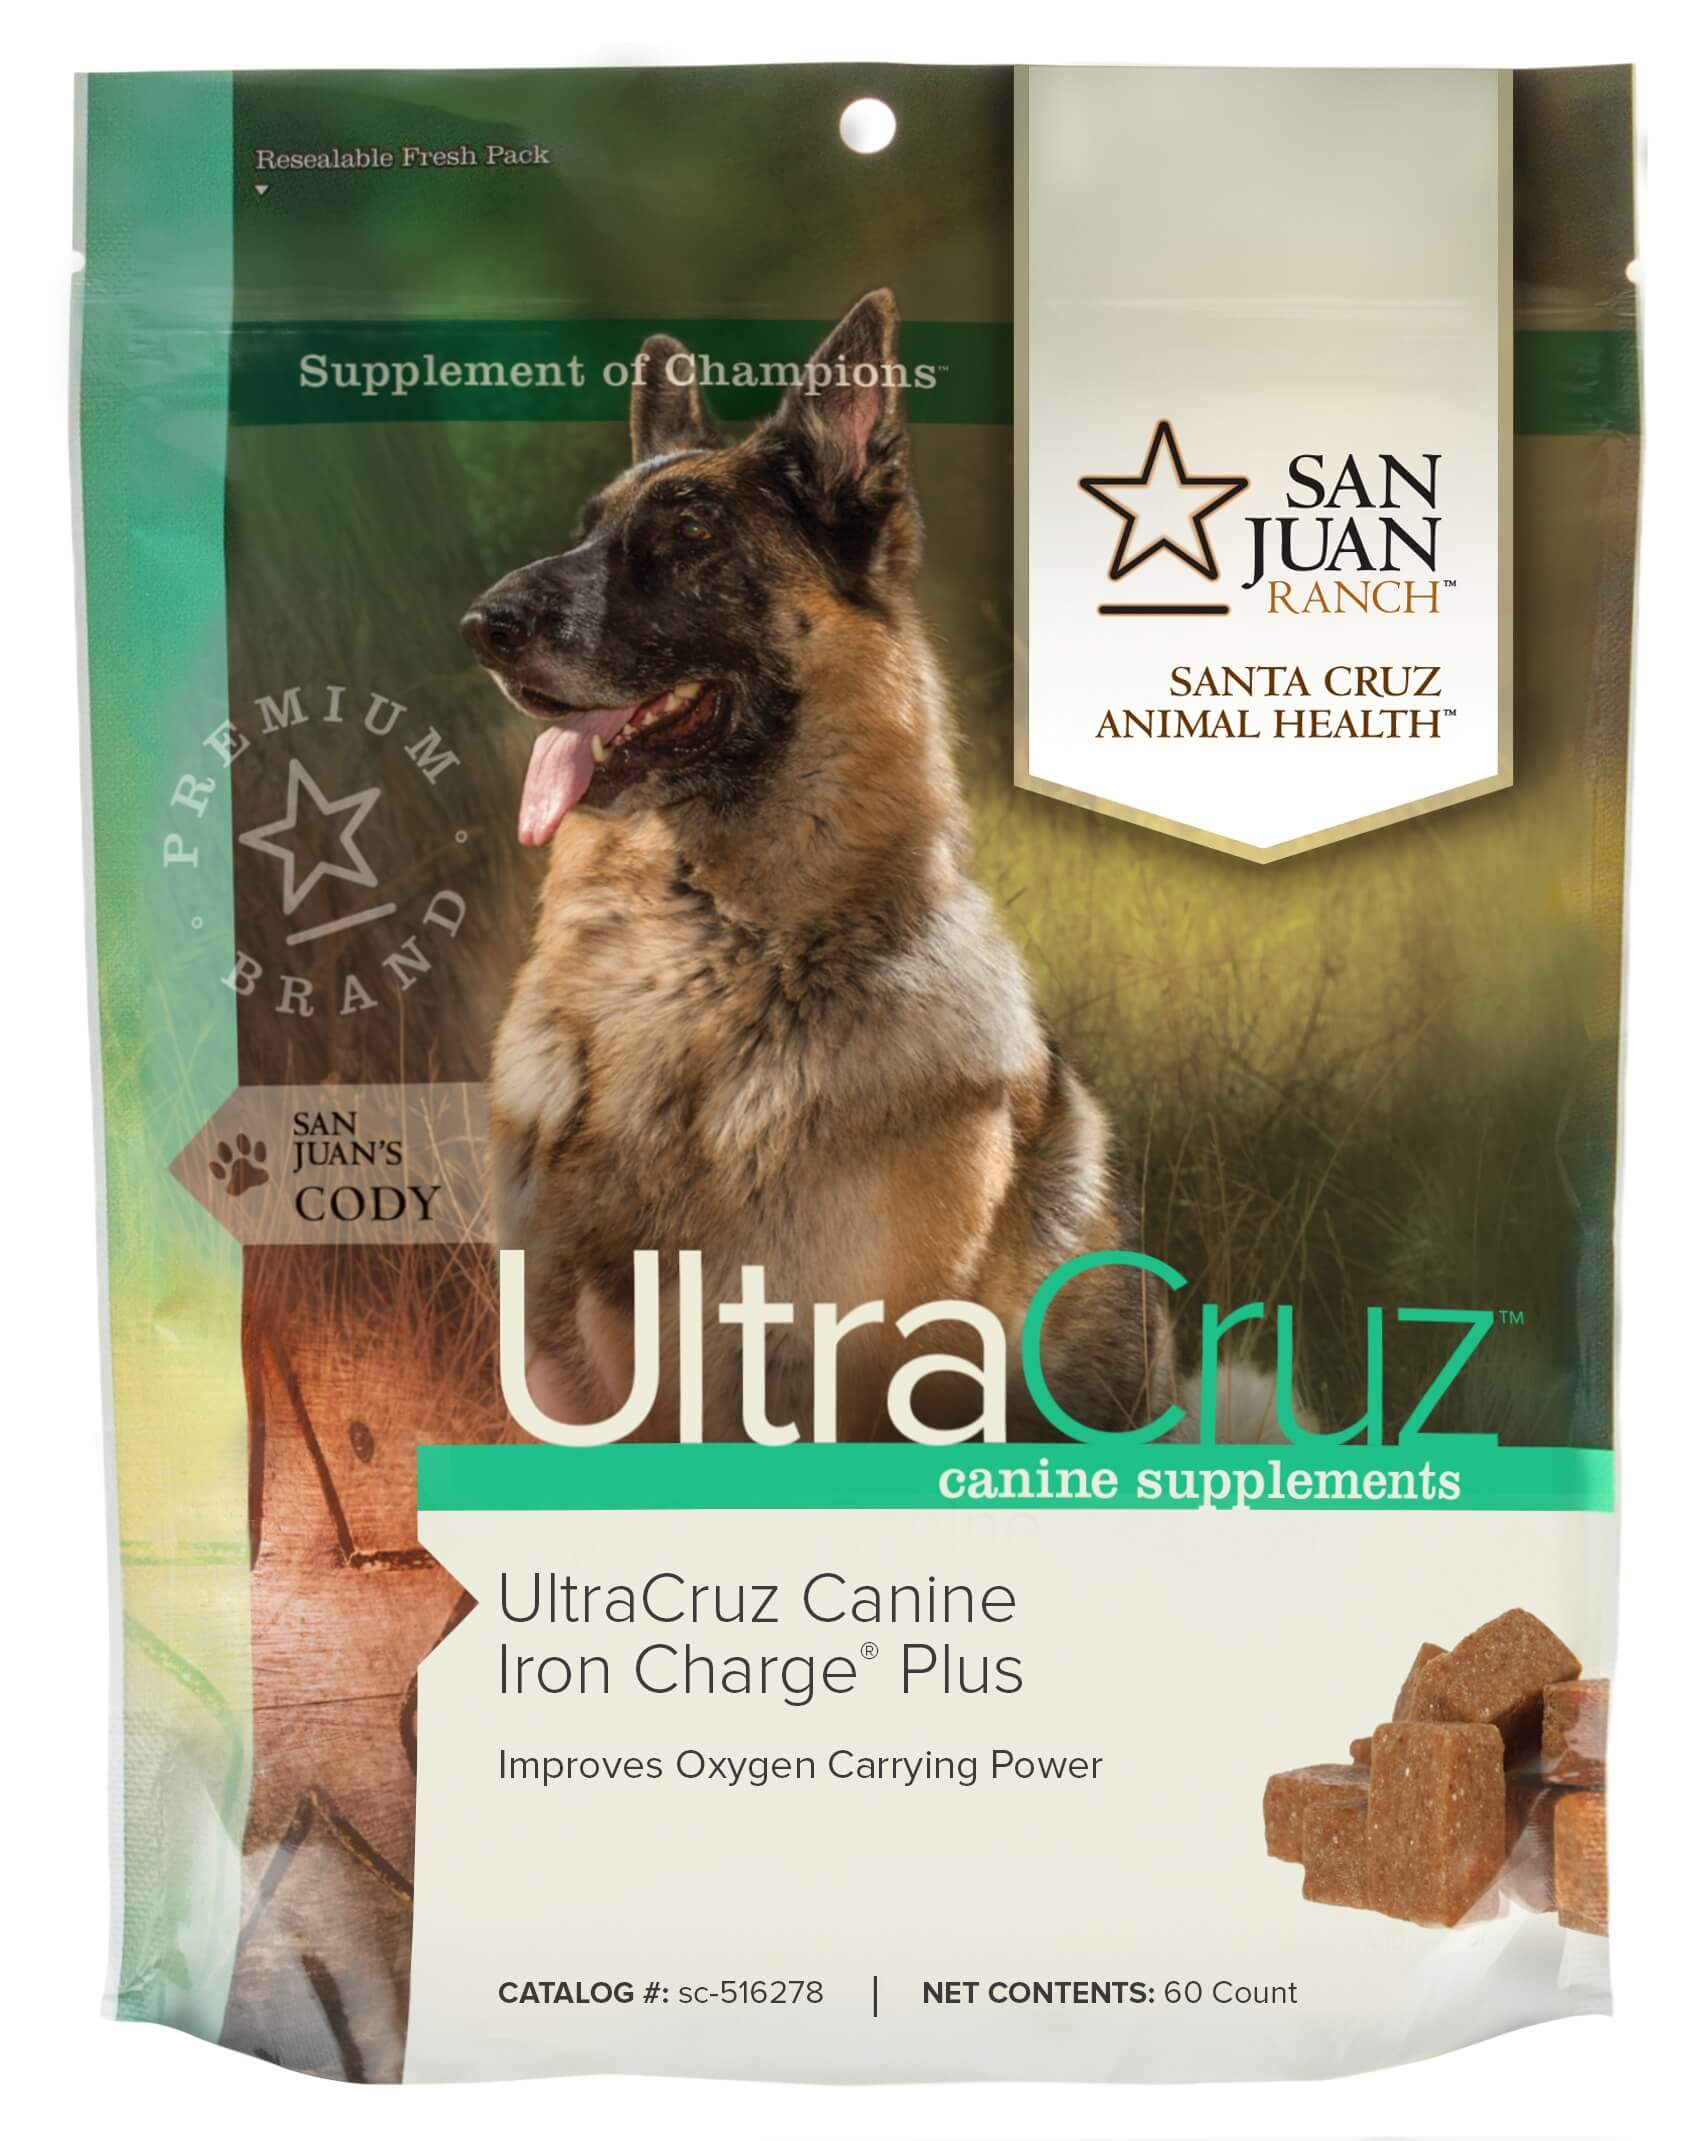 UltraCruz Canine Iron Charge Plus Supplement For Dogs, 60